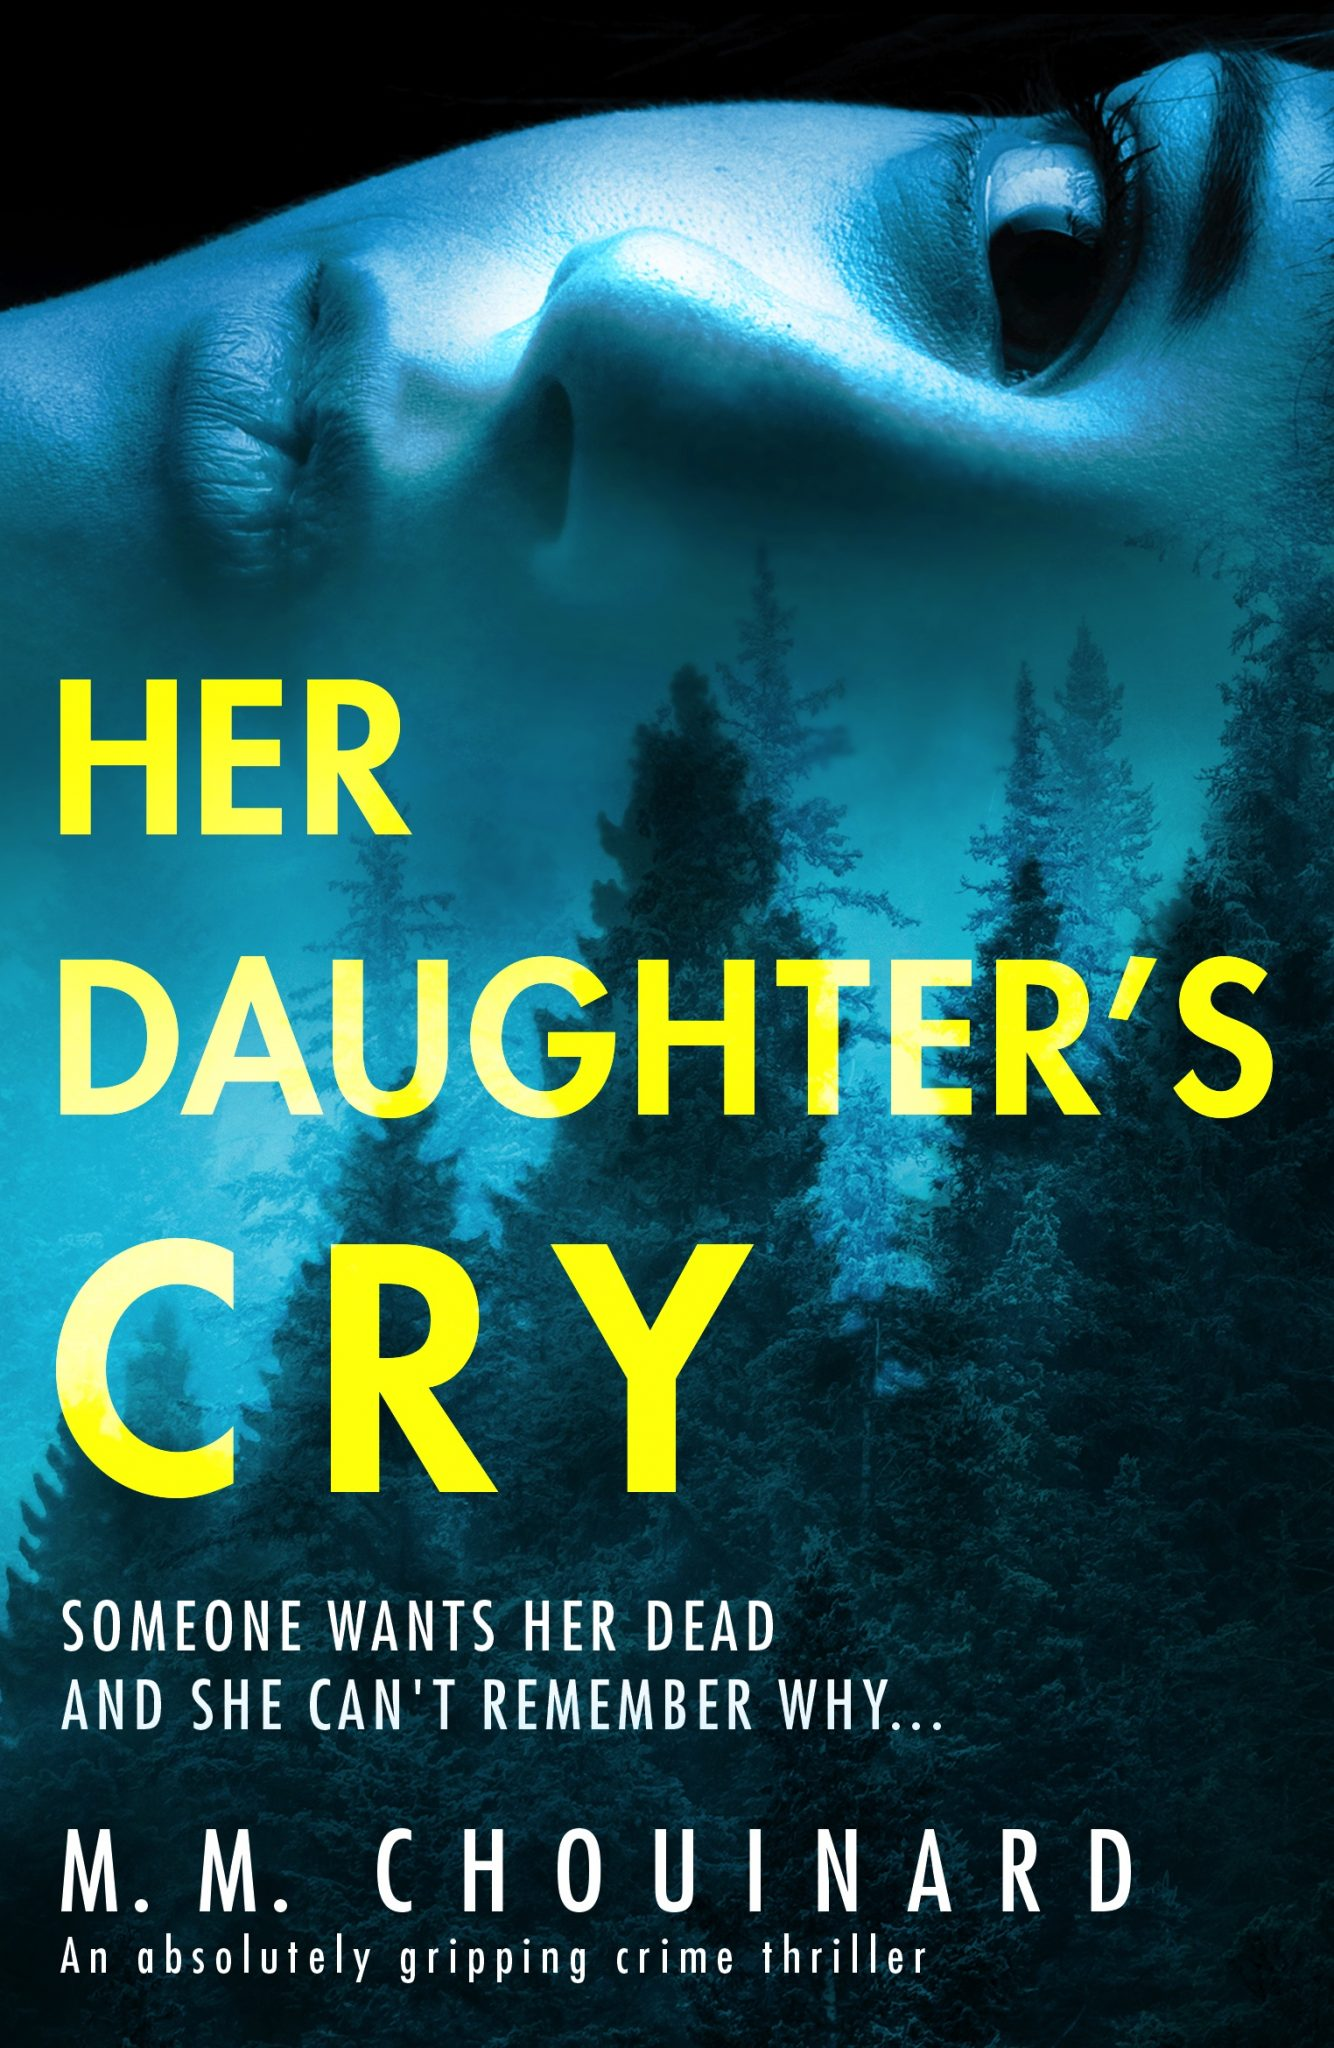 Her Daughter's Cry by M.M. Chouinard